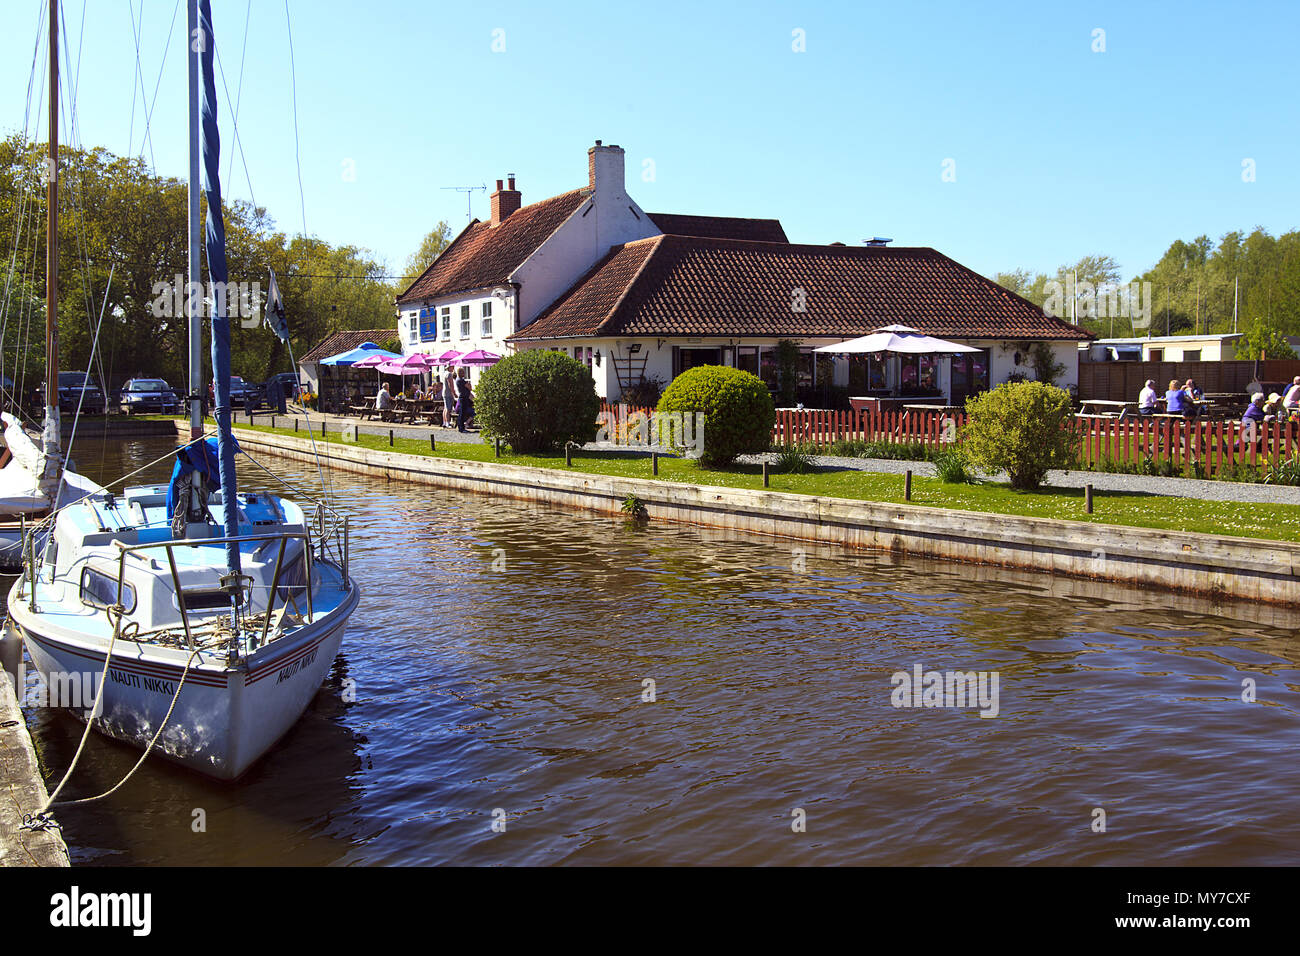 Boat Moorings by The Pleasure Boat Inn on Hickling Broad, Norfolk - Stock Image